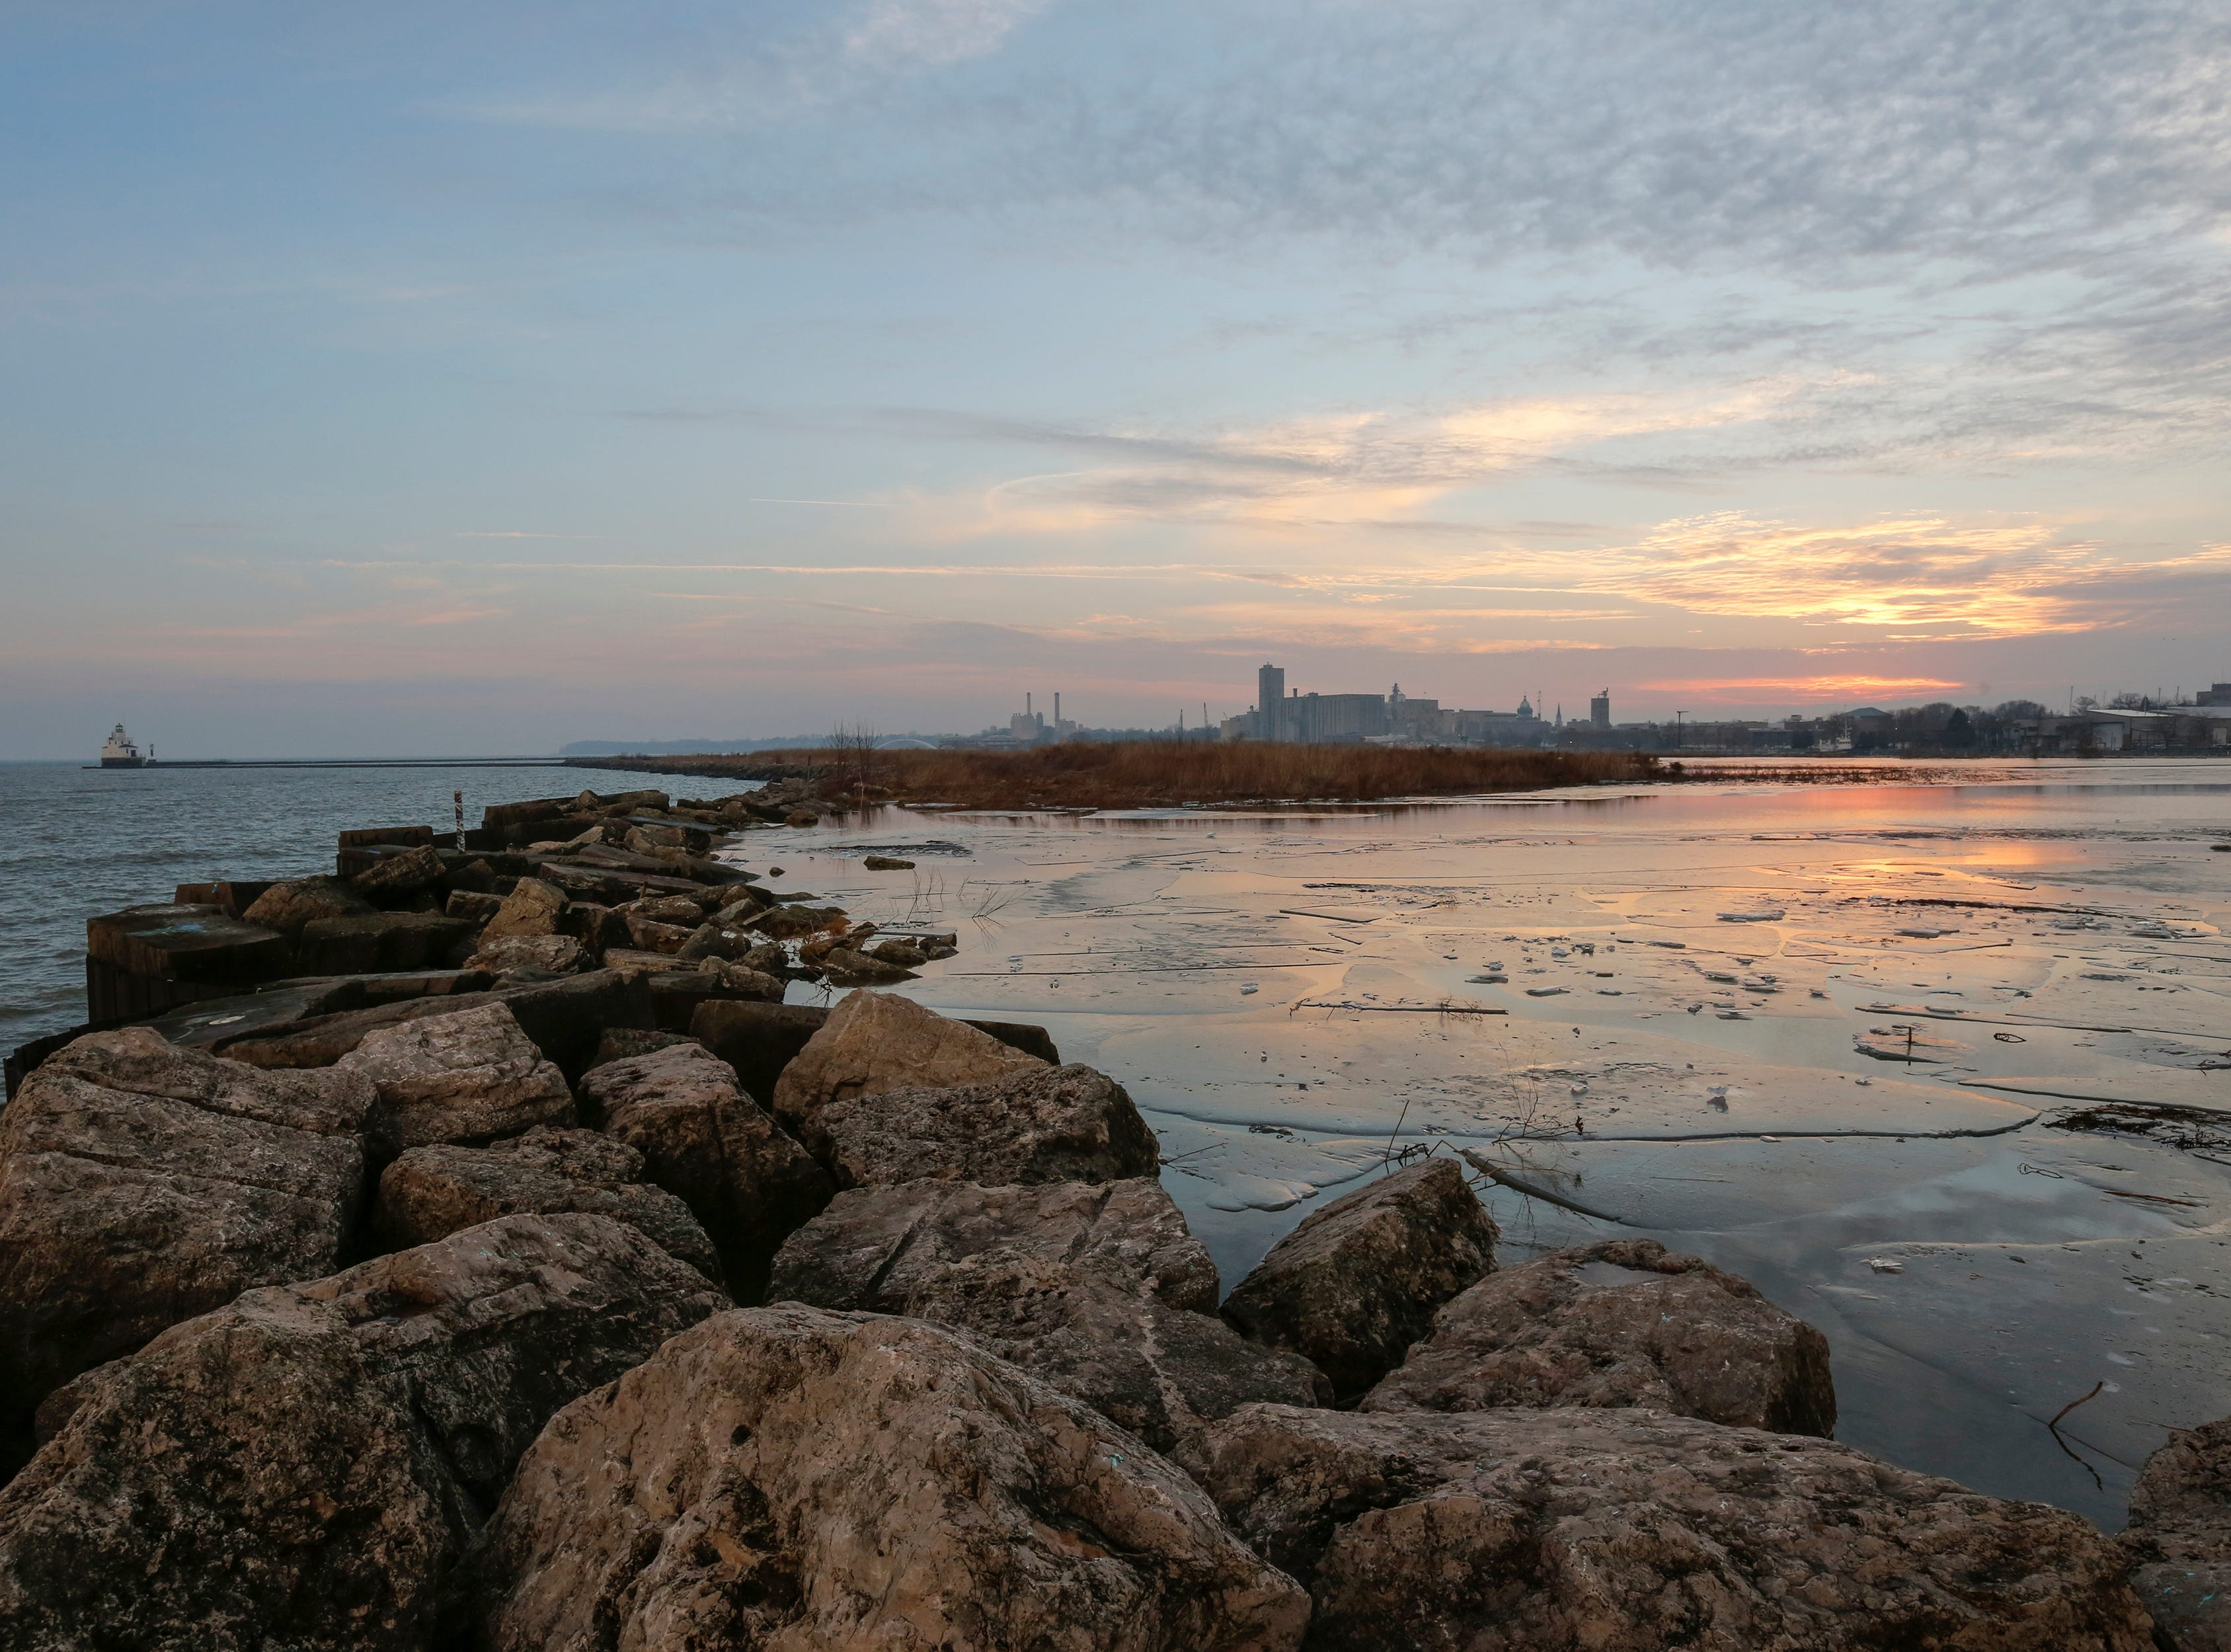 Clouds parted for a sunset over the harbor and downtown Thursday, December 13, 2018, in Manitowoc, Wis. Joshua Clark/USA TODAY NETWORK-Wisconsin